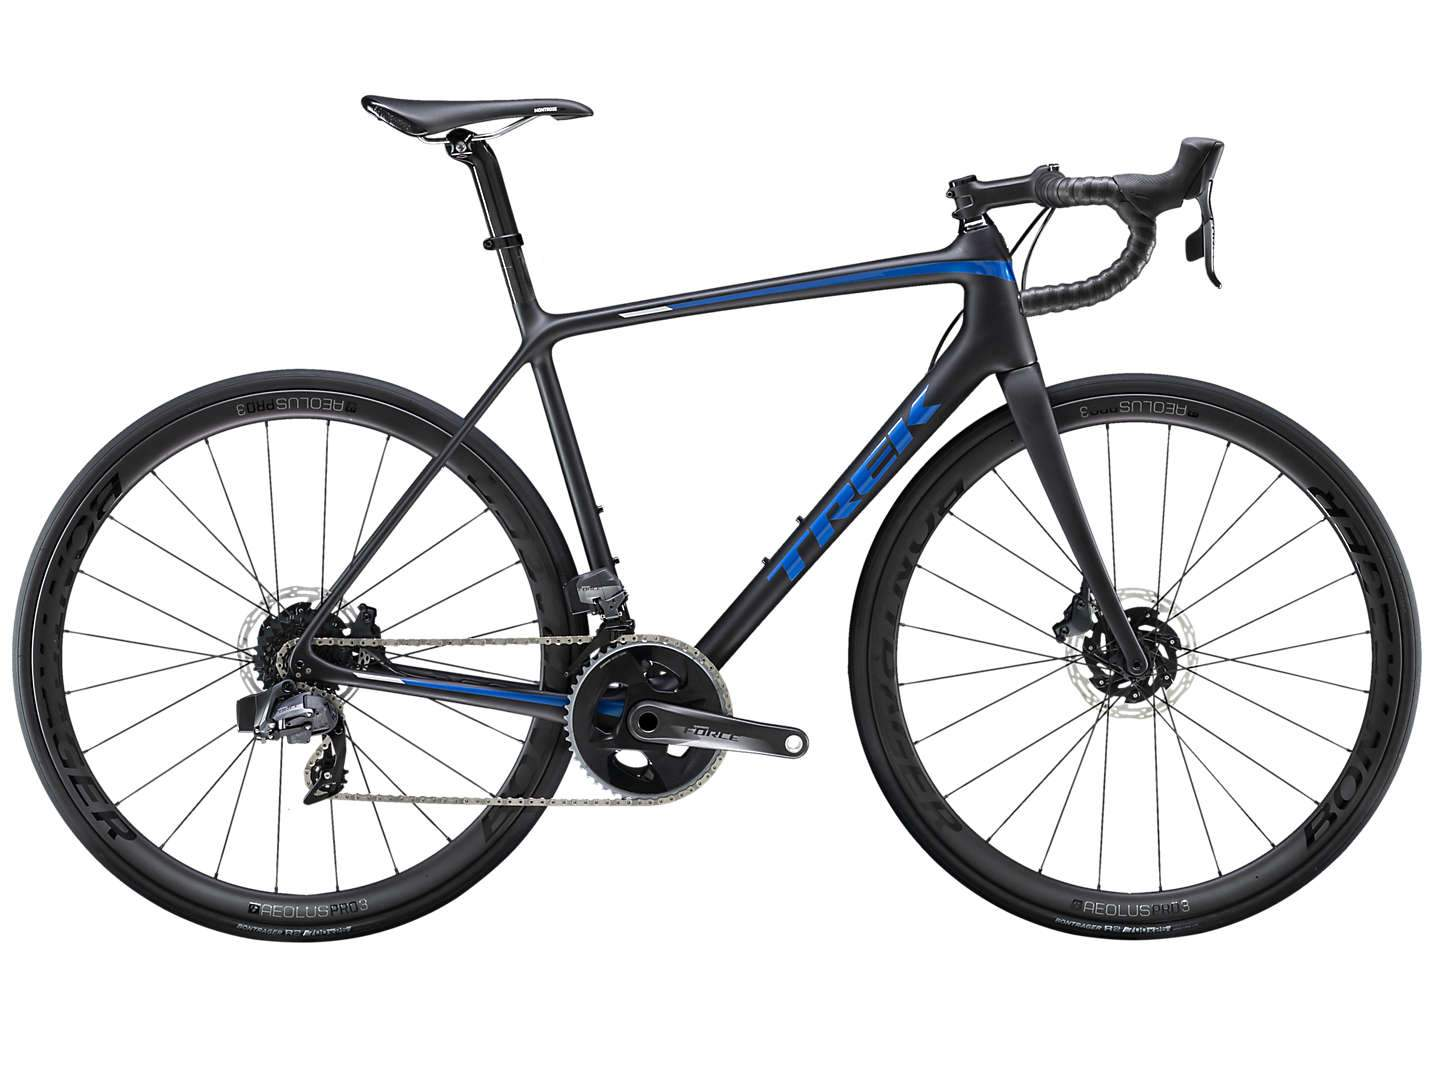 Trek Emonda SL 7 Disc SRAM Force ETAP 2020 - Cycles Galleria Melbourne